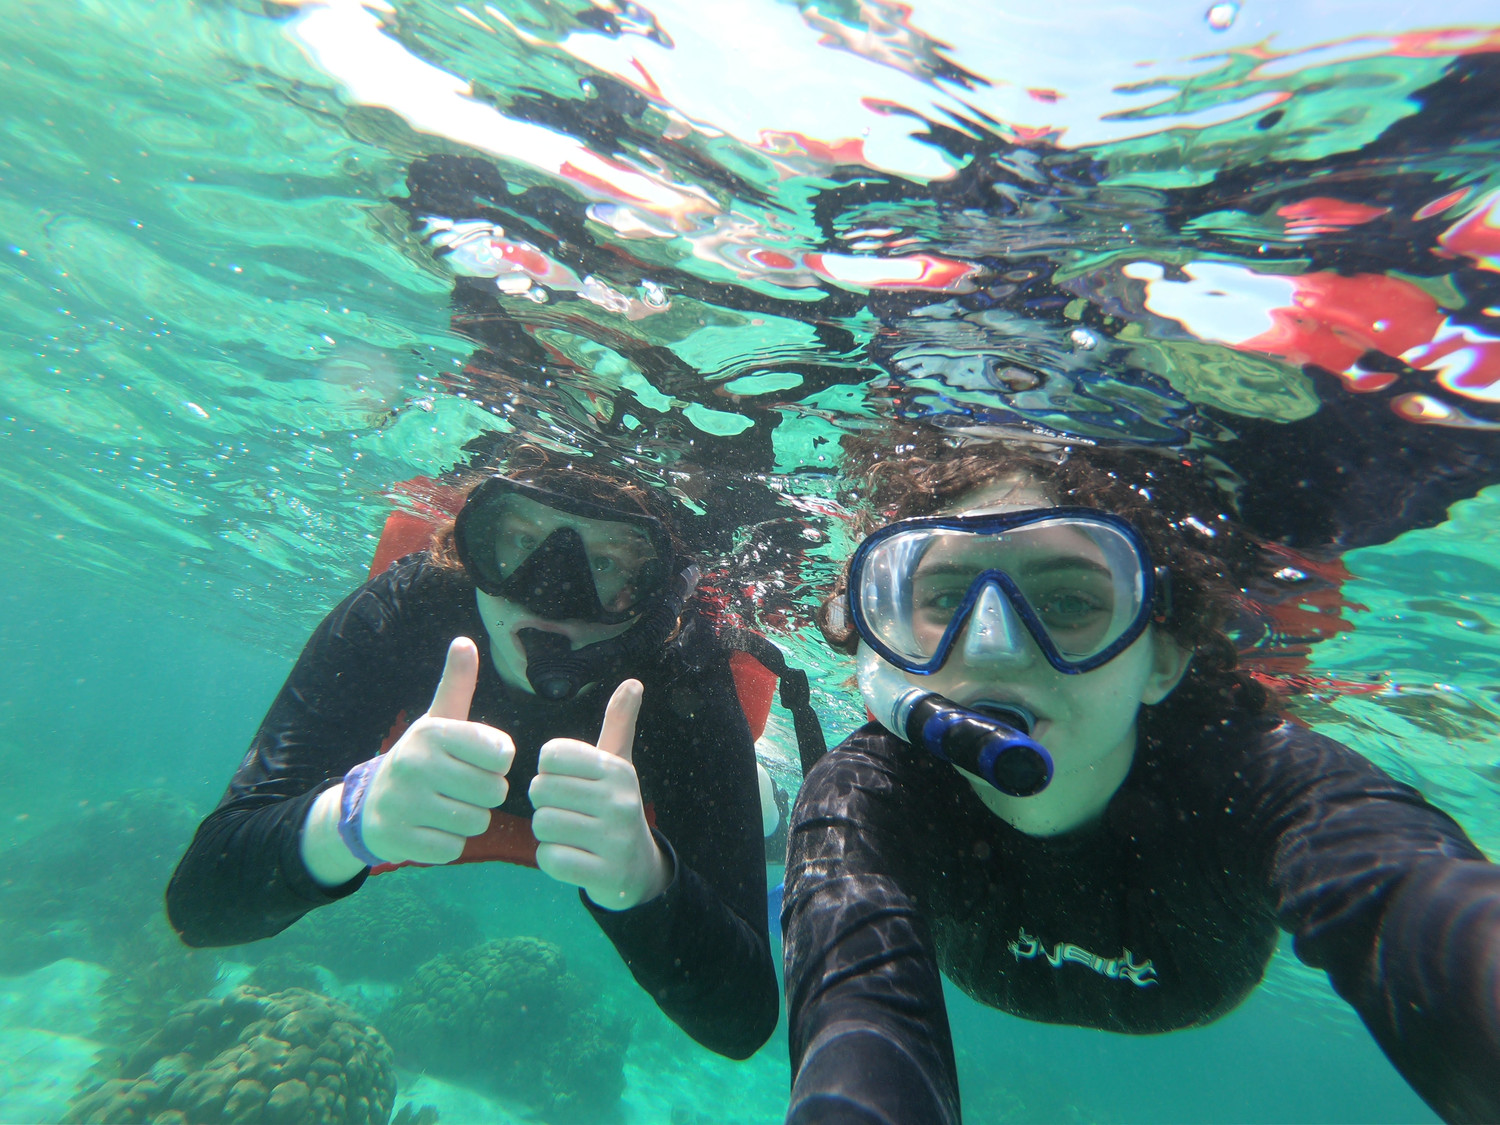 Students and teachers from North Shore High School traveled to Belize during spring break, where they learned a great deal. Emma Spina, left, and Zoe Malin studied marine life up close.